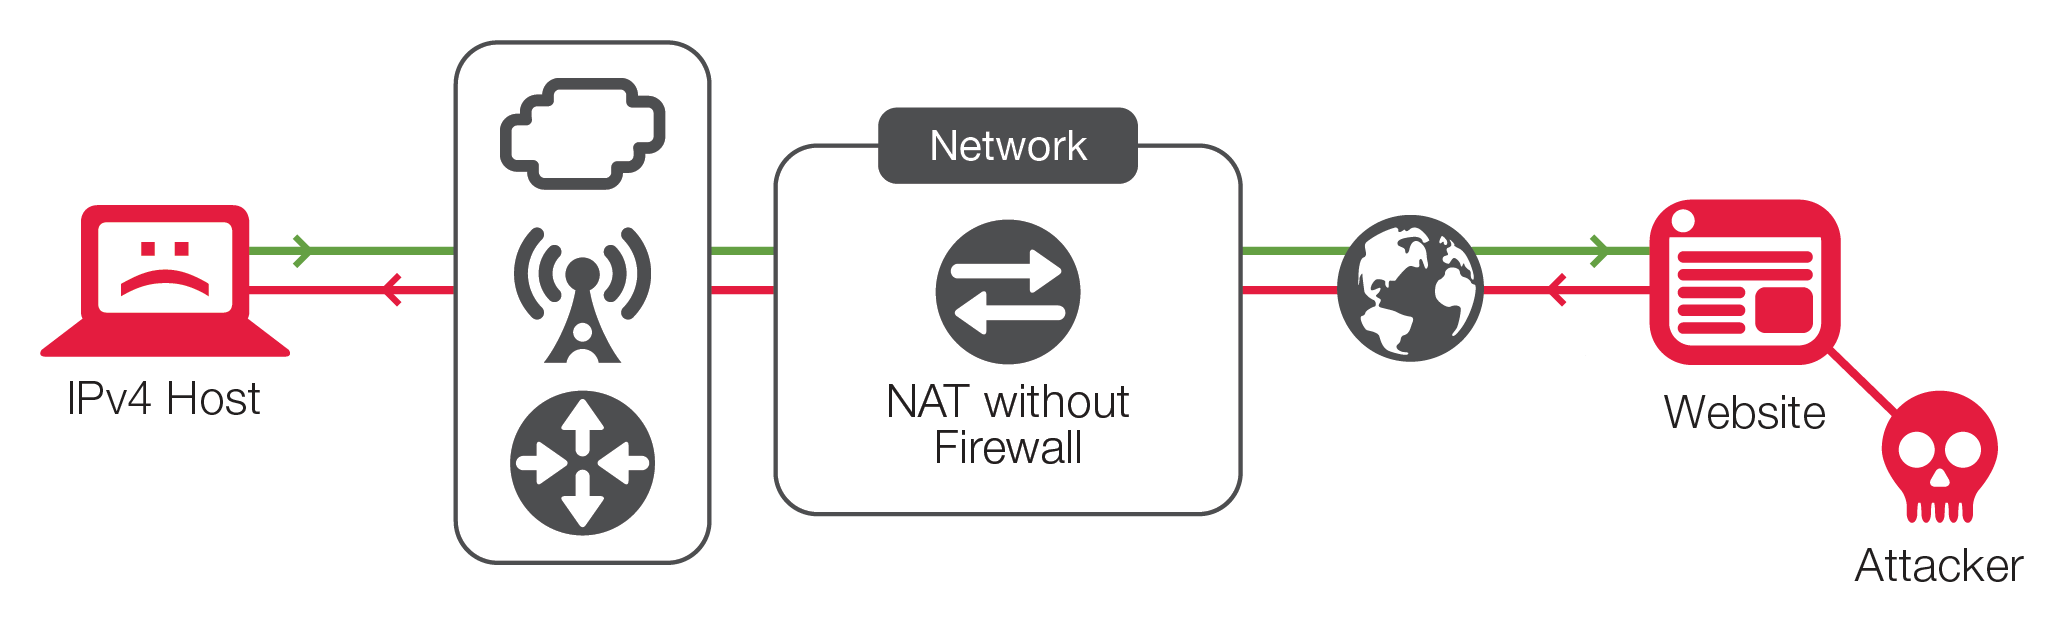 Even for IPv4 hosts, modern attacks frequently can compromise a NAT device in the path